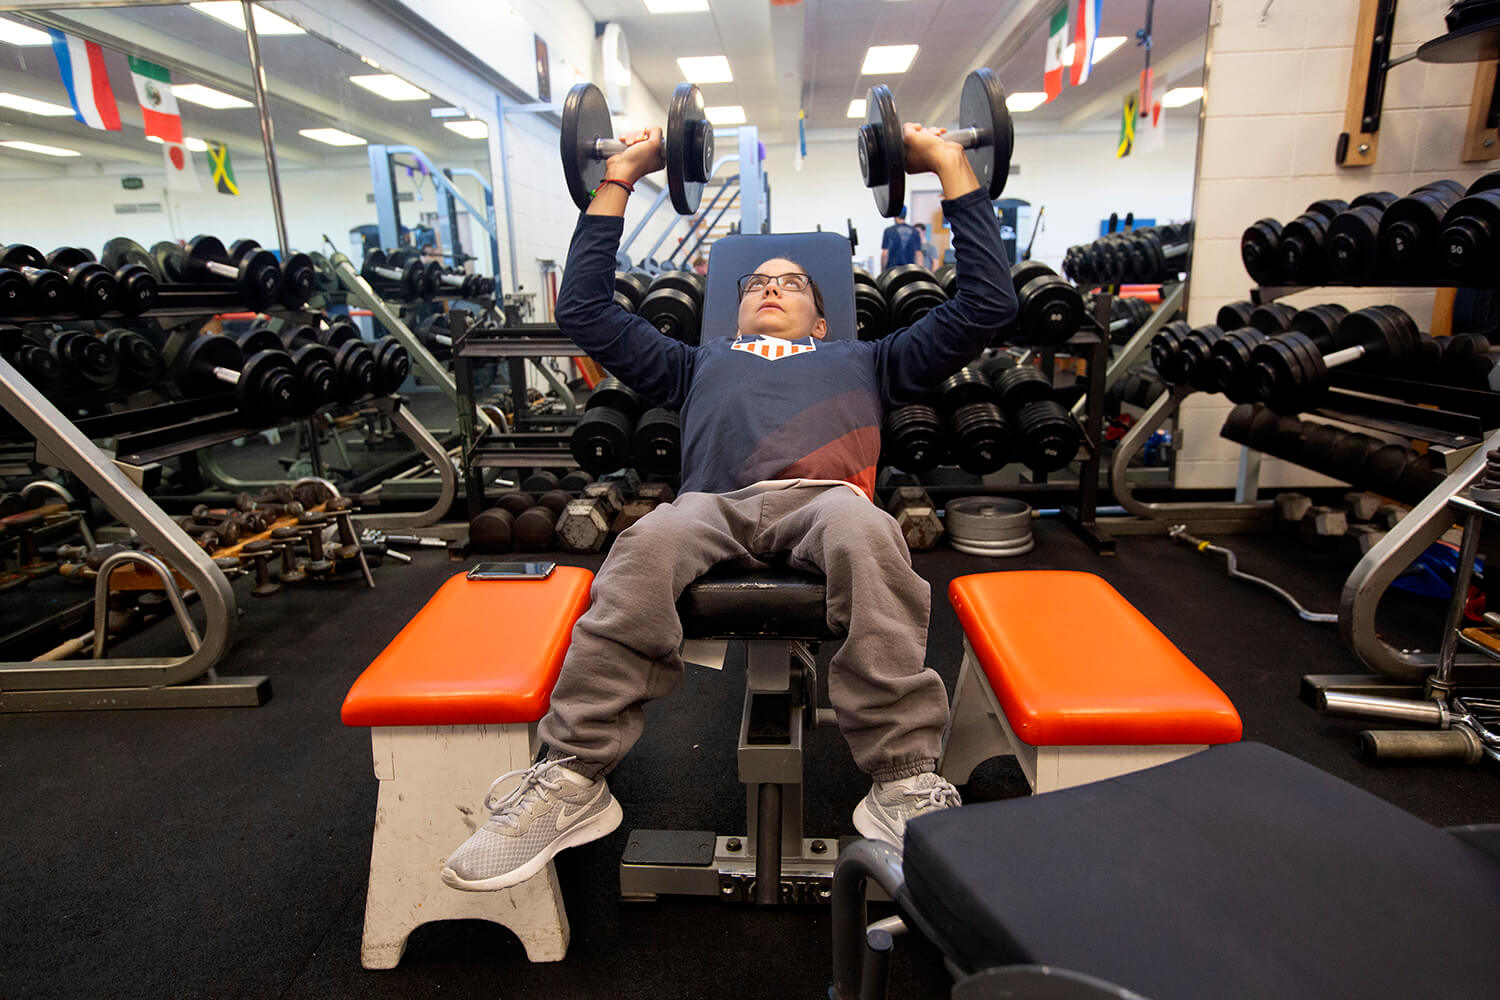 Kaitlyn Eaton works out at the university's Disability Resources and Educational Services center.